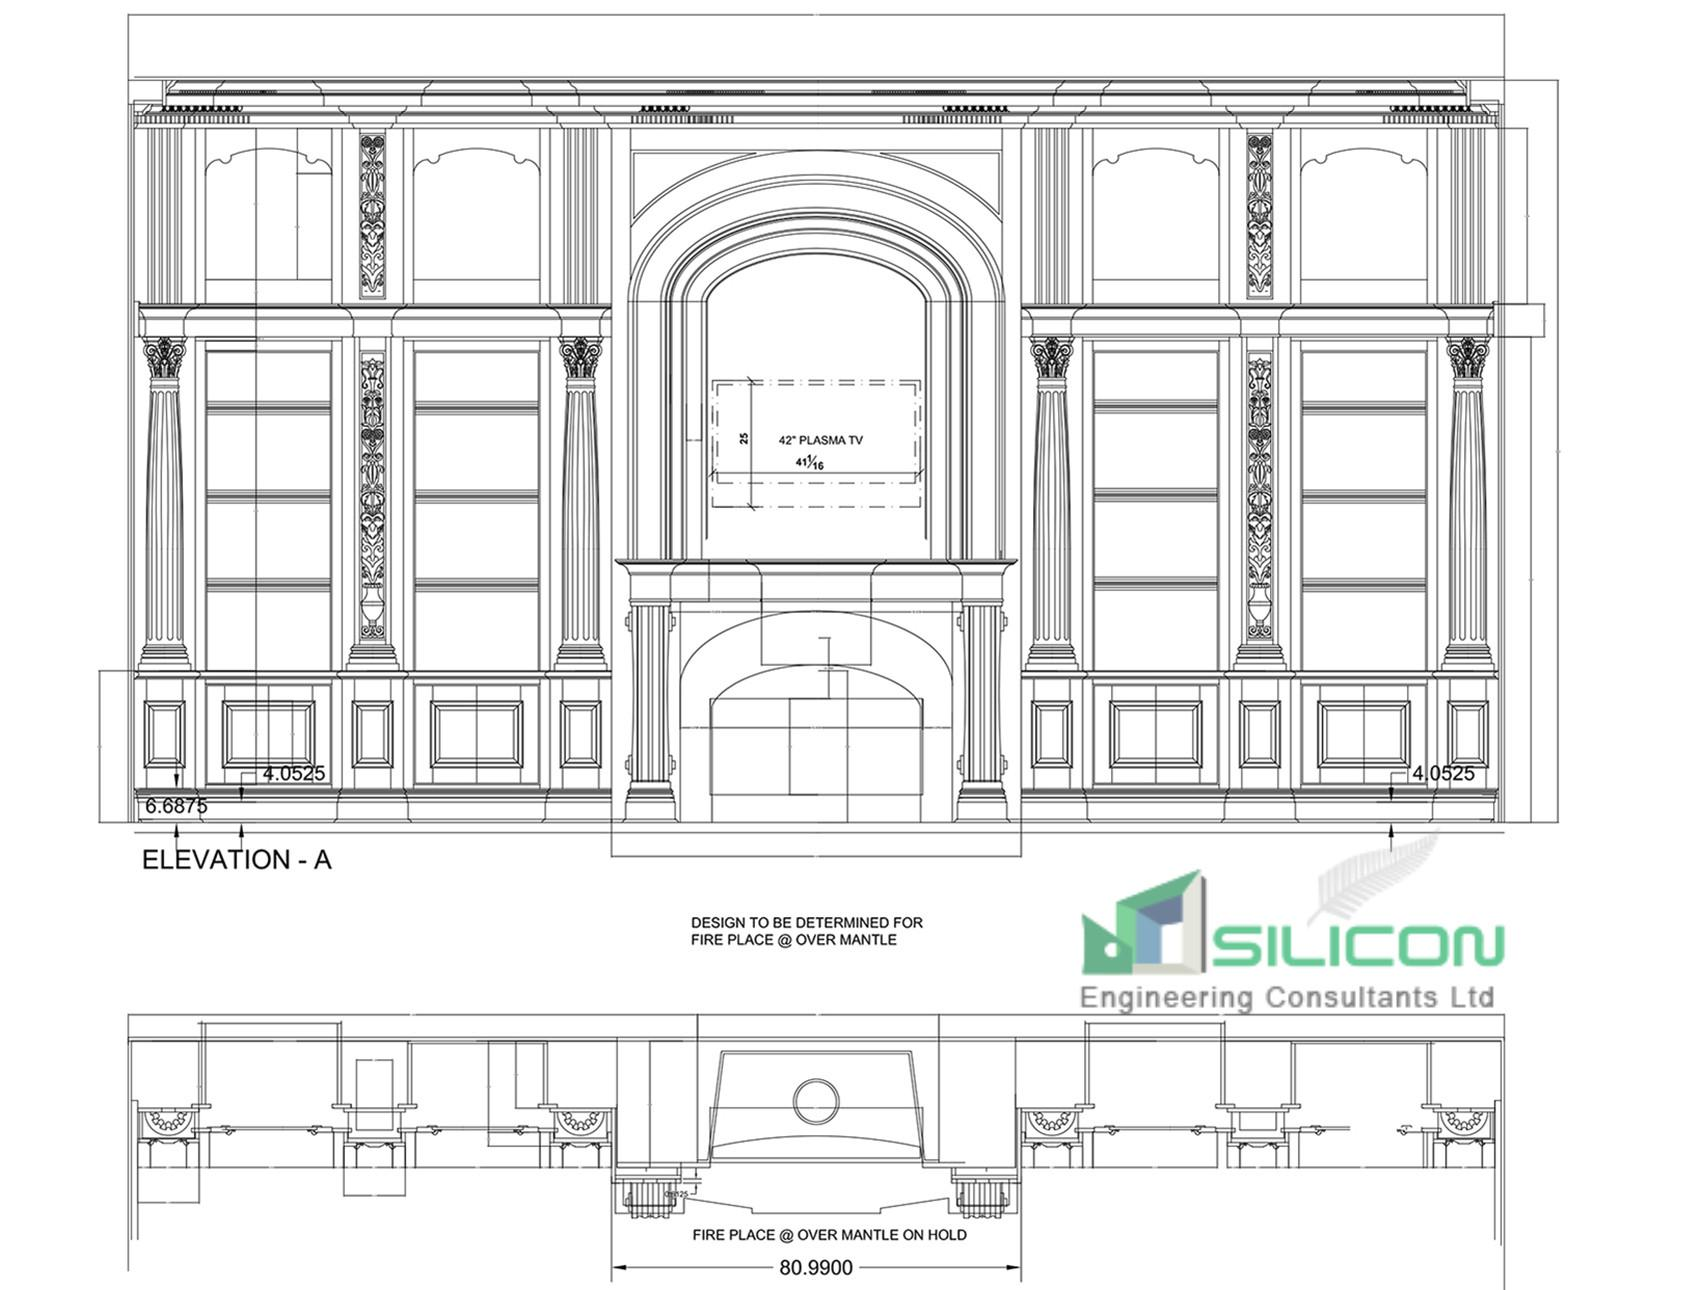 Interior Millwork Shop Drawings Auckland - Silicon Engineering Consultants Limited